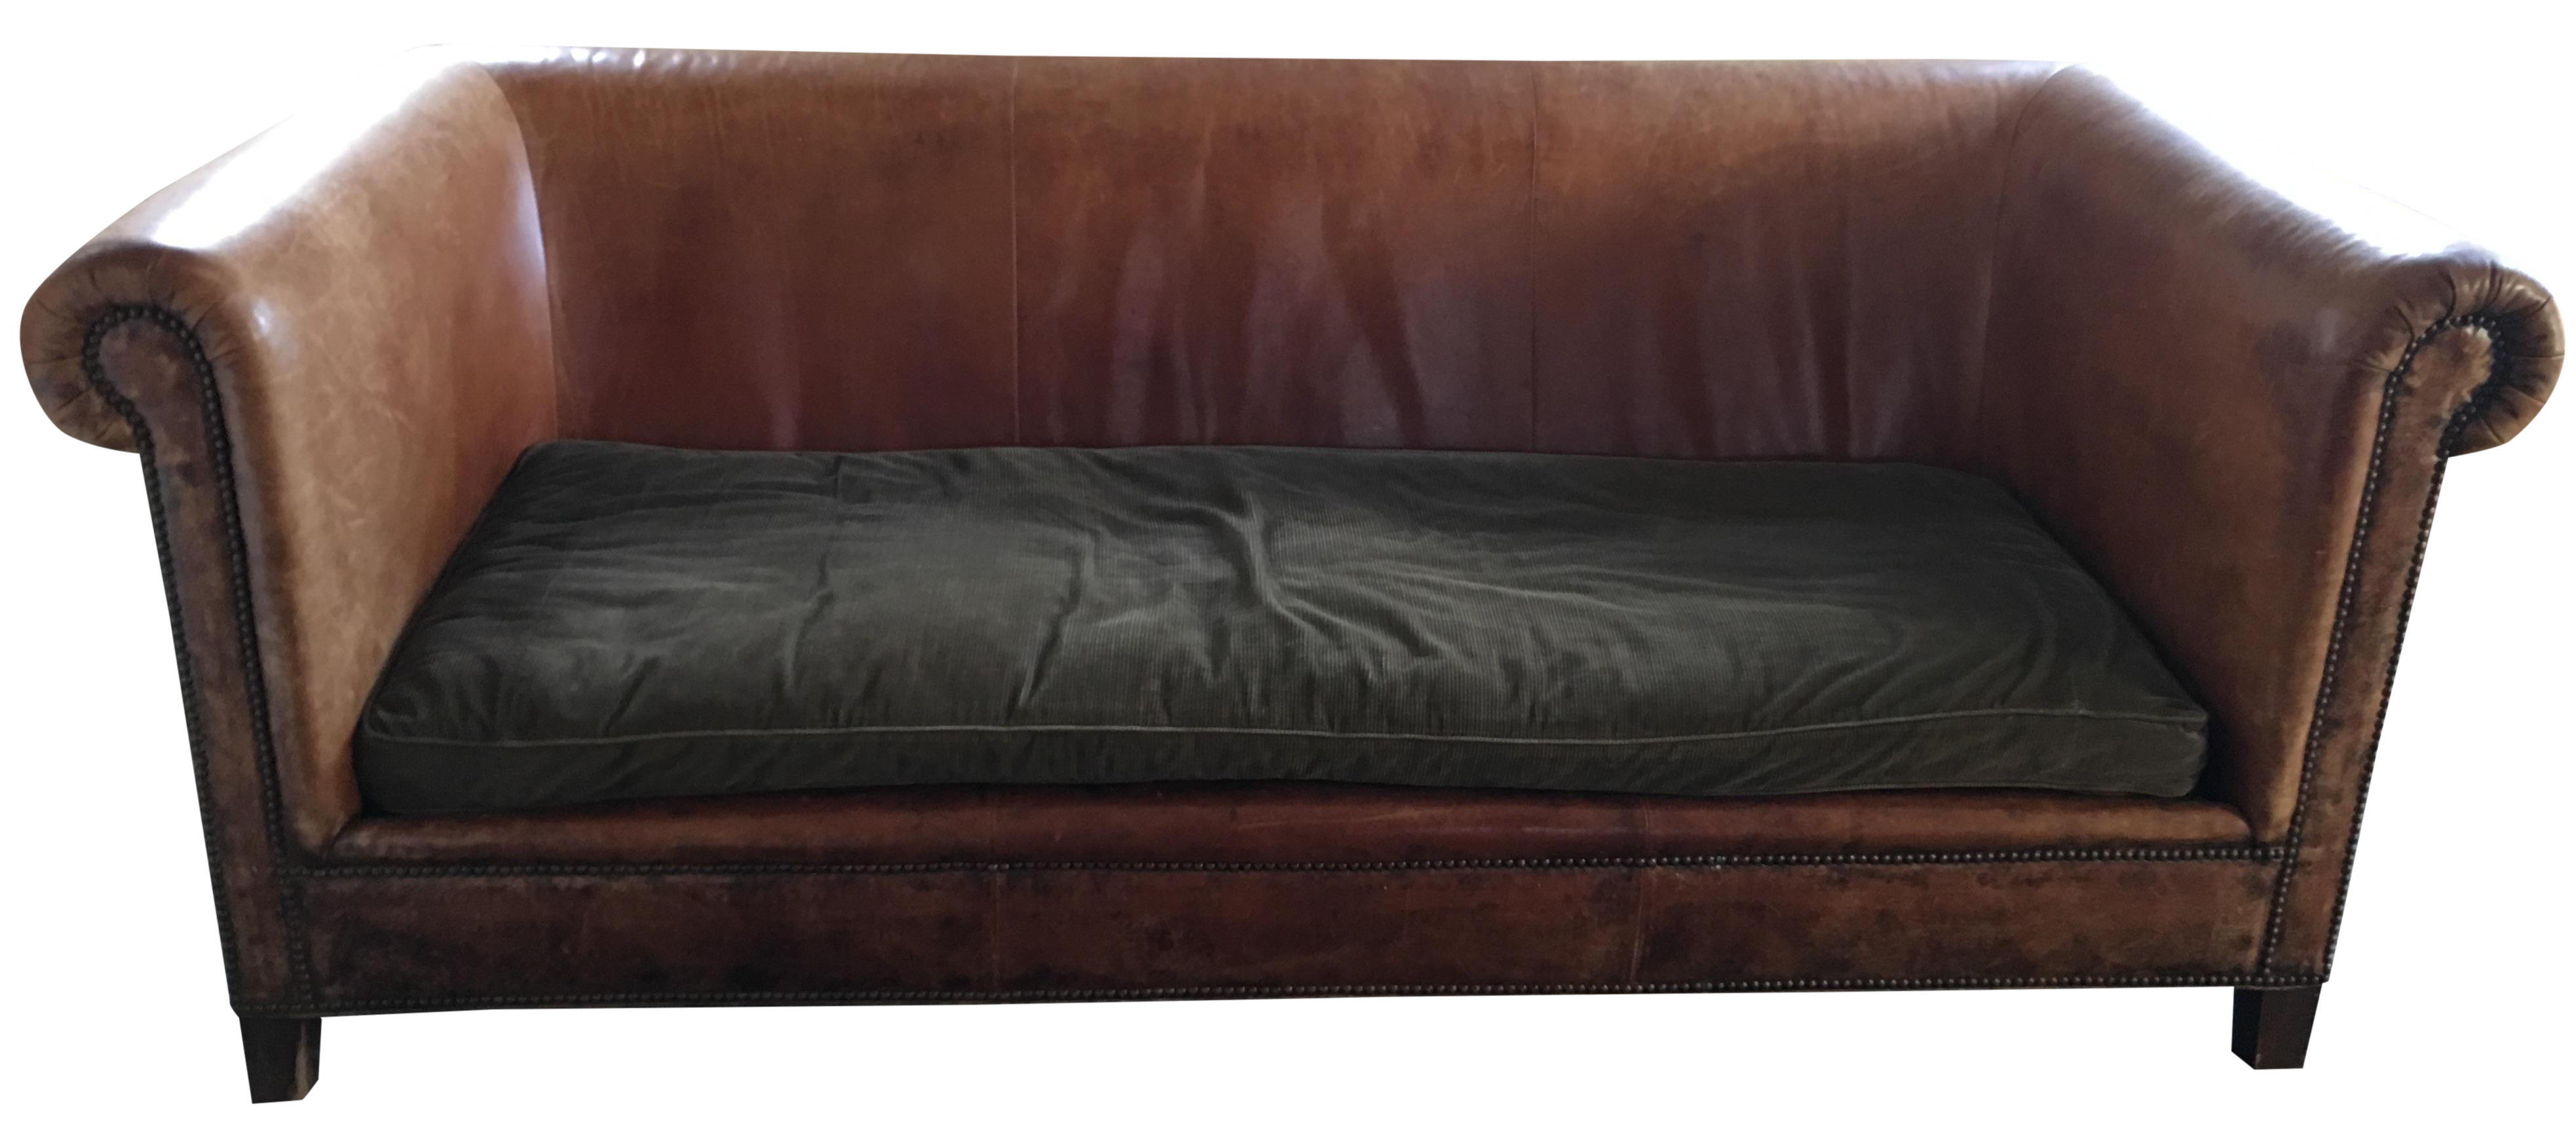 Cool Ralph Lauren Couch Awesome Ralph Lauren Couch 36 For Sofas